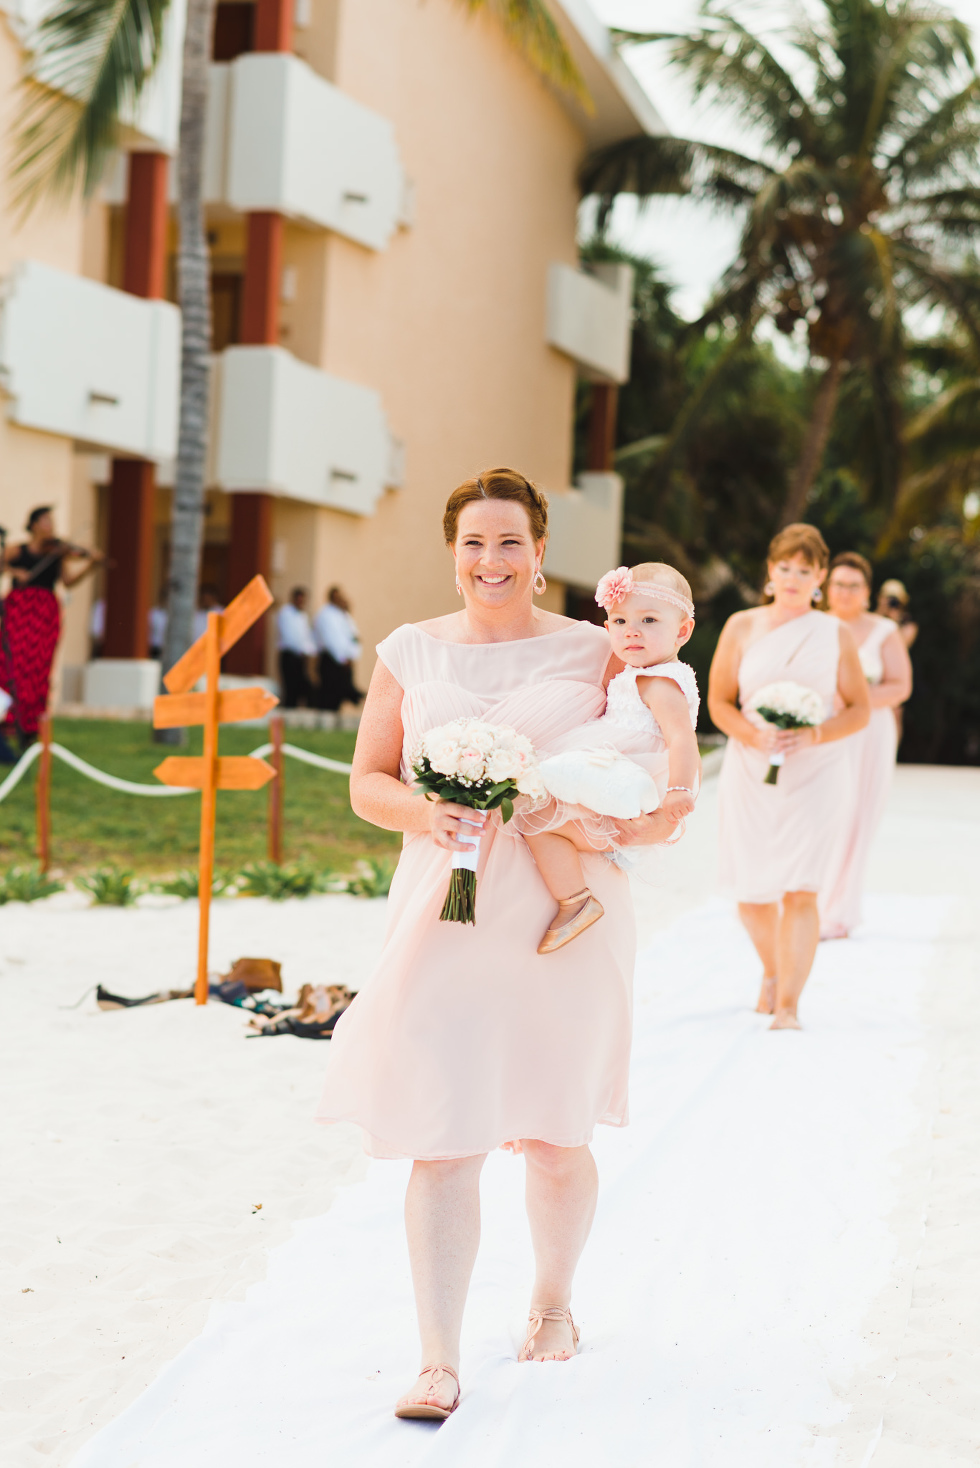 bridesmaid walking down aisle with her baby and a bouquet in her arms at beach wedding ceremony at Now Sapphire Resort in Mexico